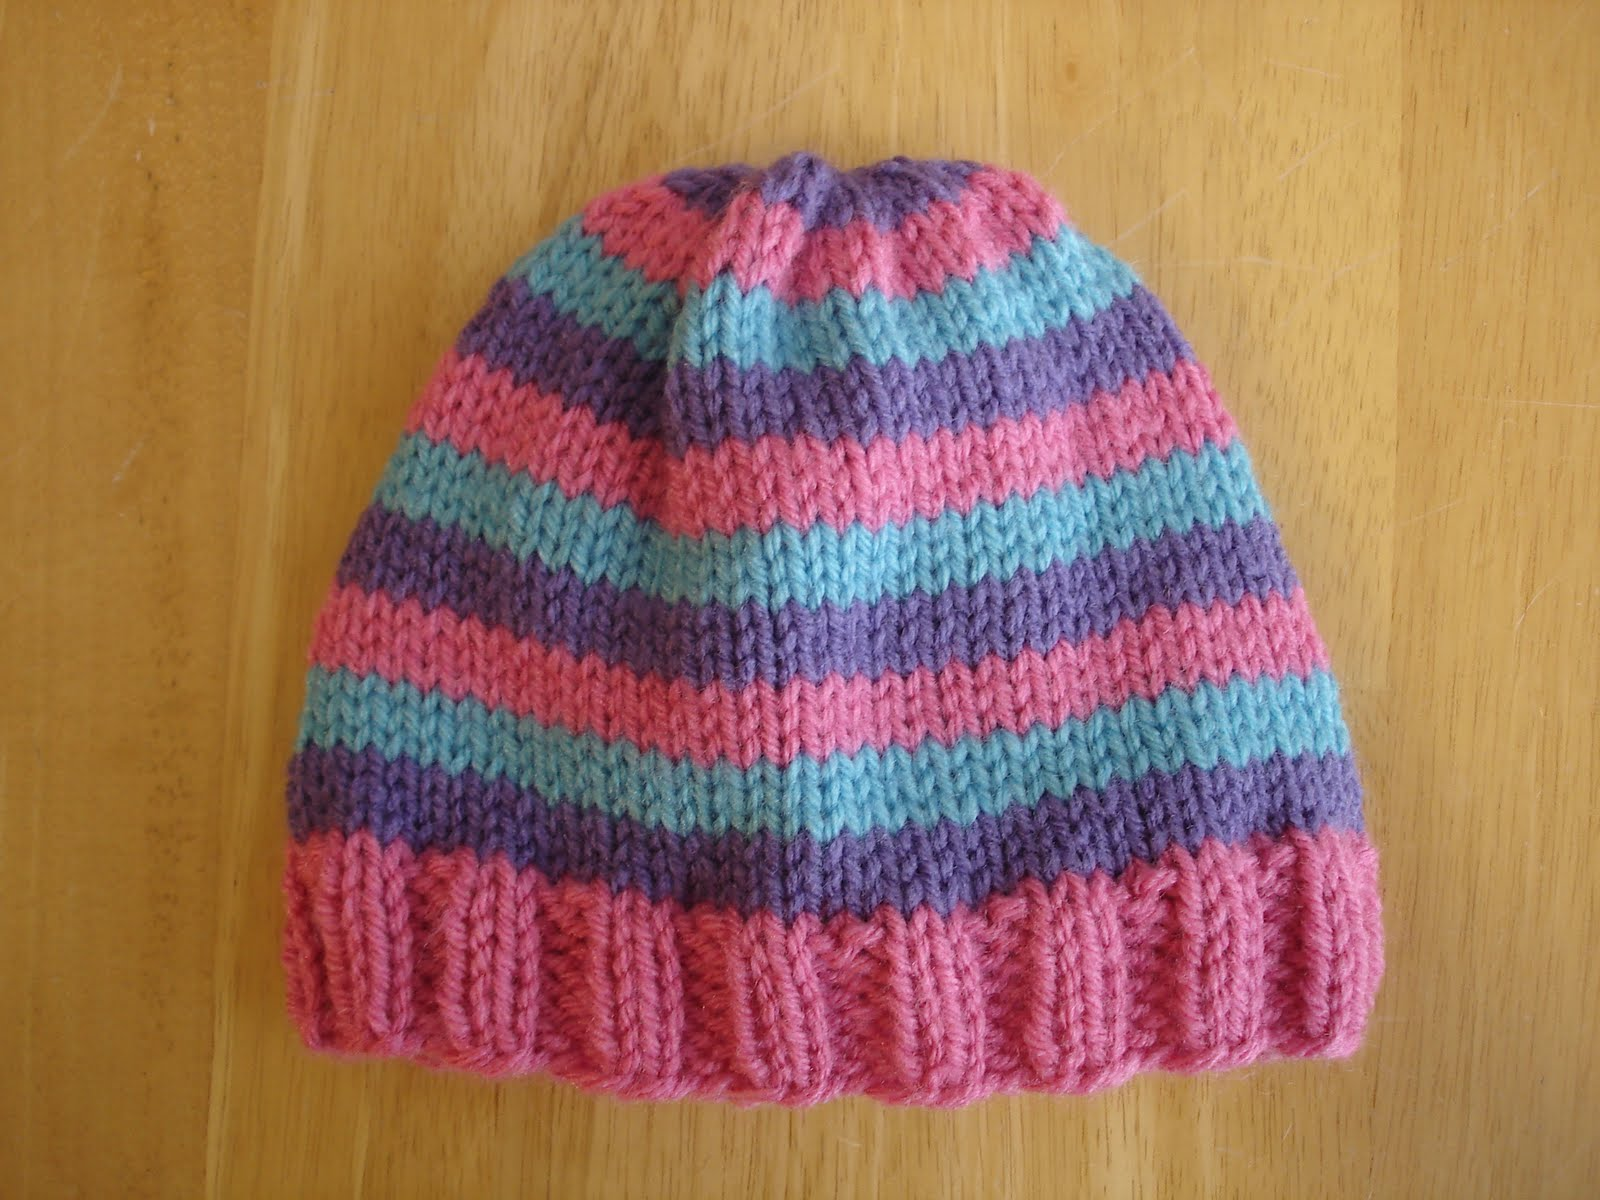 Knitting Patterns Child Hats Free : Fiber Flux: Free Knitting Pattern...Super Pink Toddler Hat!